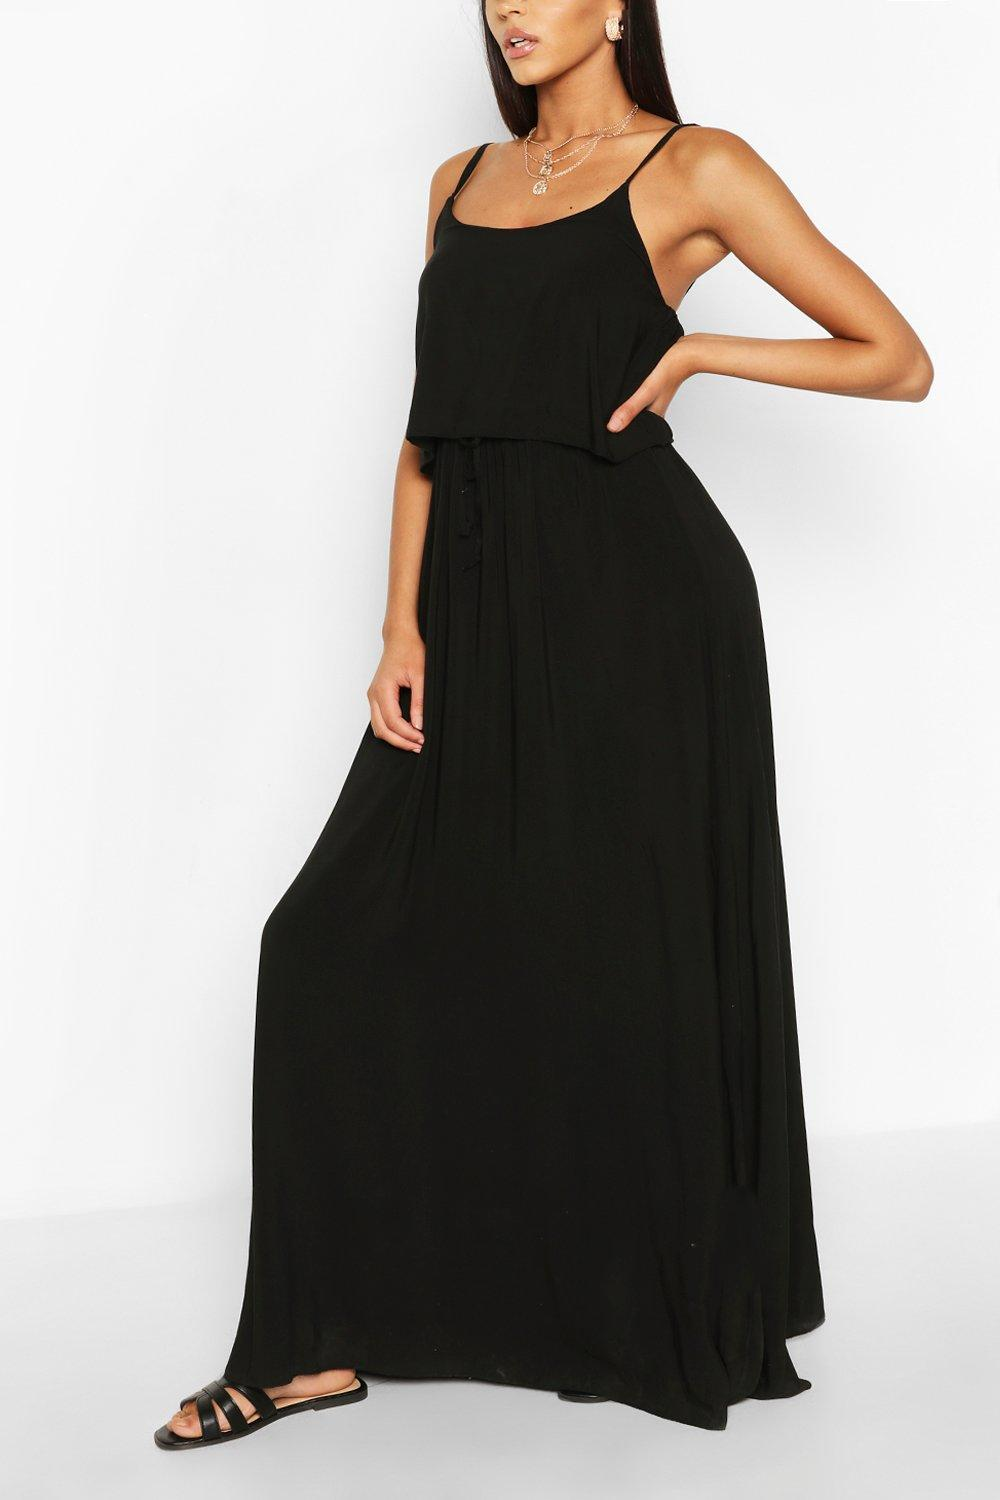 Summer Dresses Strappy Double Layer Maxi Dress